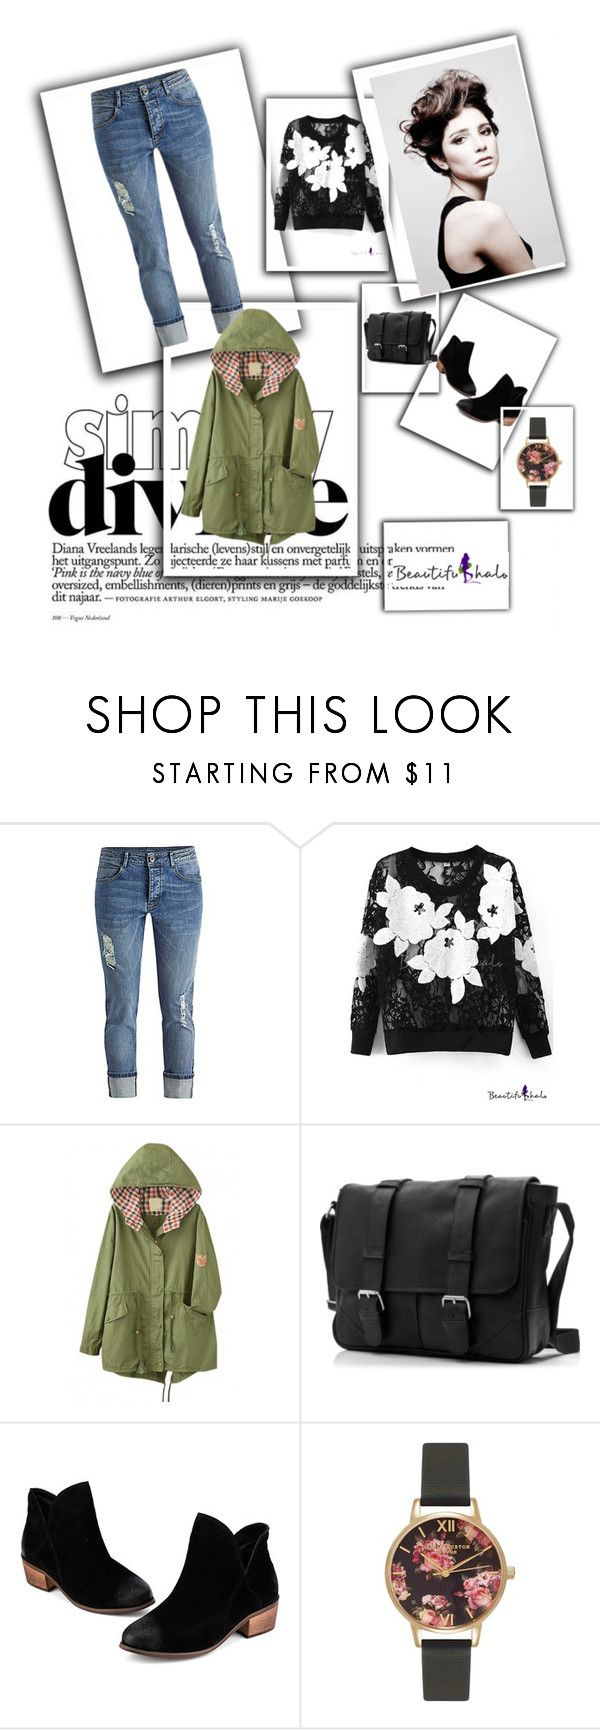 """""""Beautifulhalo 15-I"""" by almma-karic ❤ liked on Polyvore featuring Angelo, Olivia Burton, women's clothing, women, female, woman, misses, juniors, beautifulhalo and bhalo"""